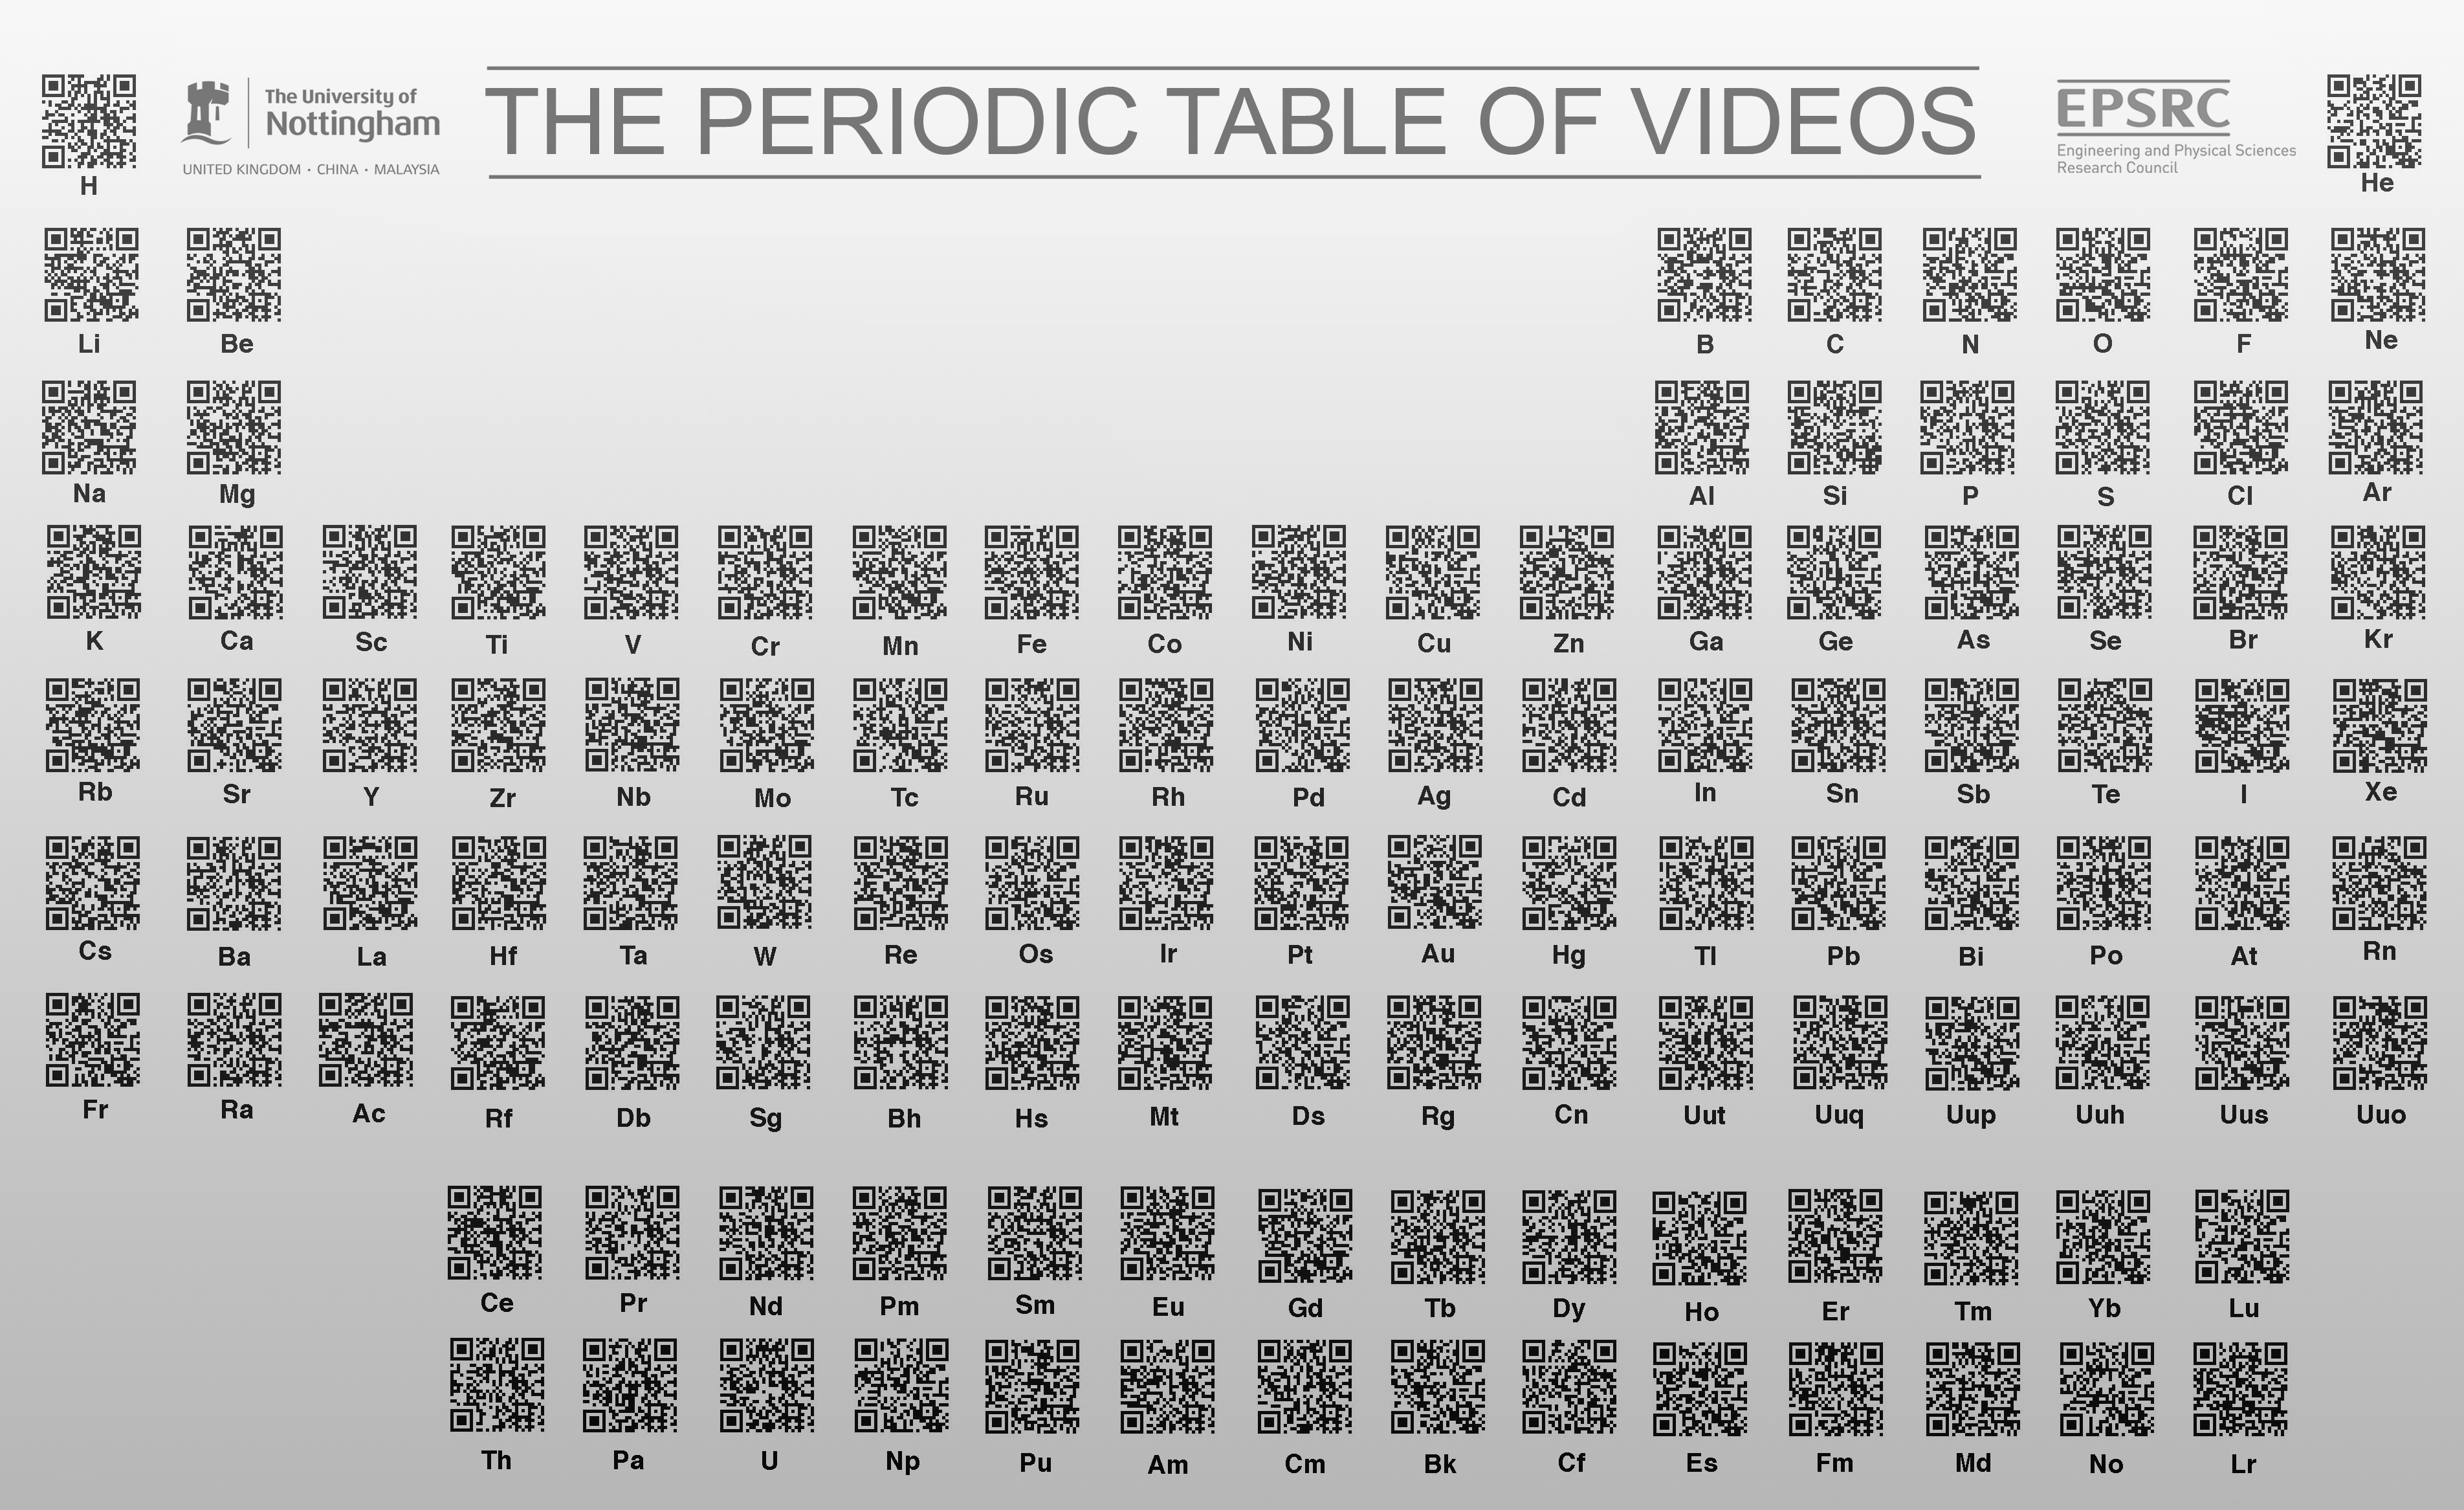 EPSRC version of our QR code table | Flickr - Photo Sharing!